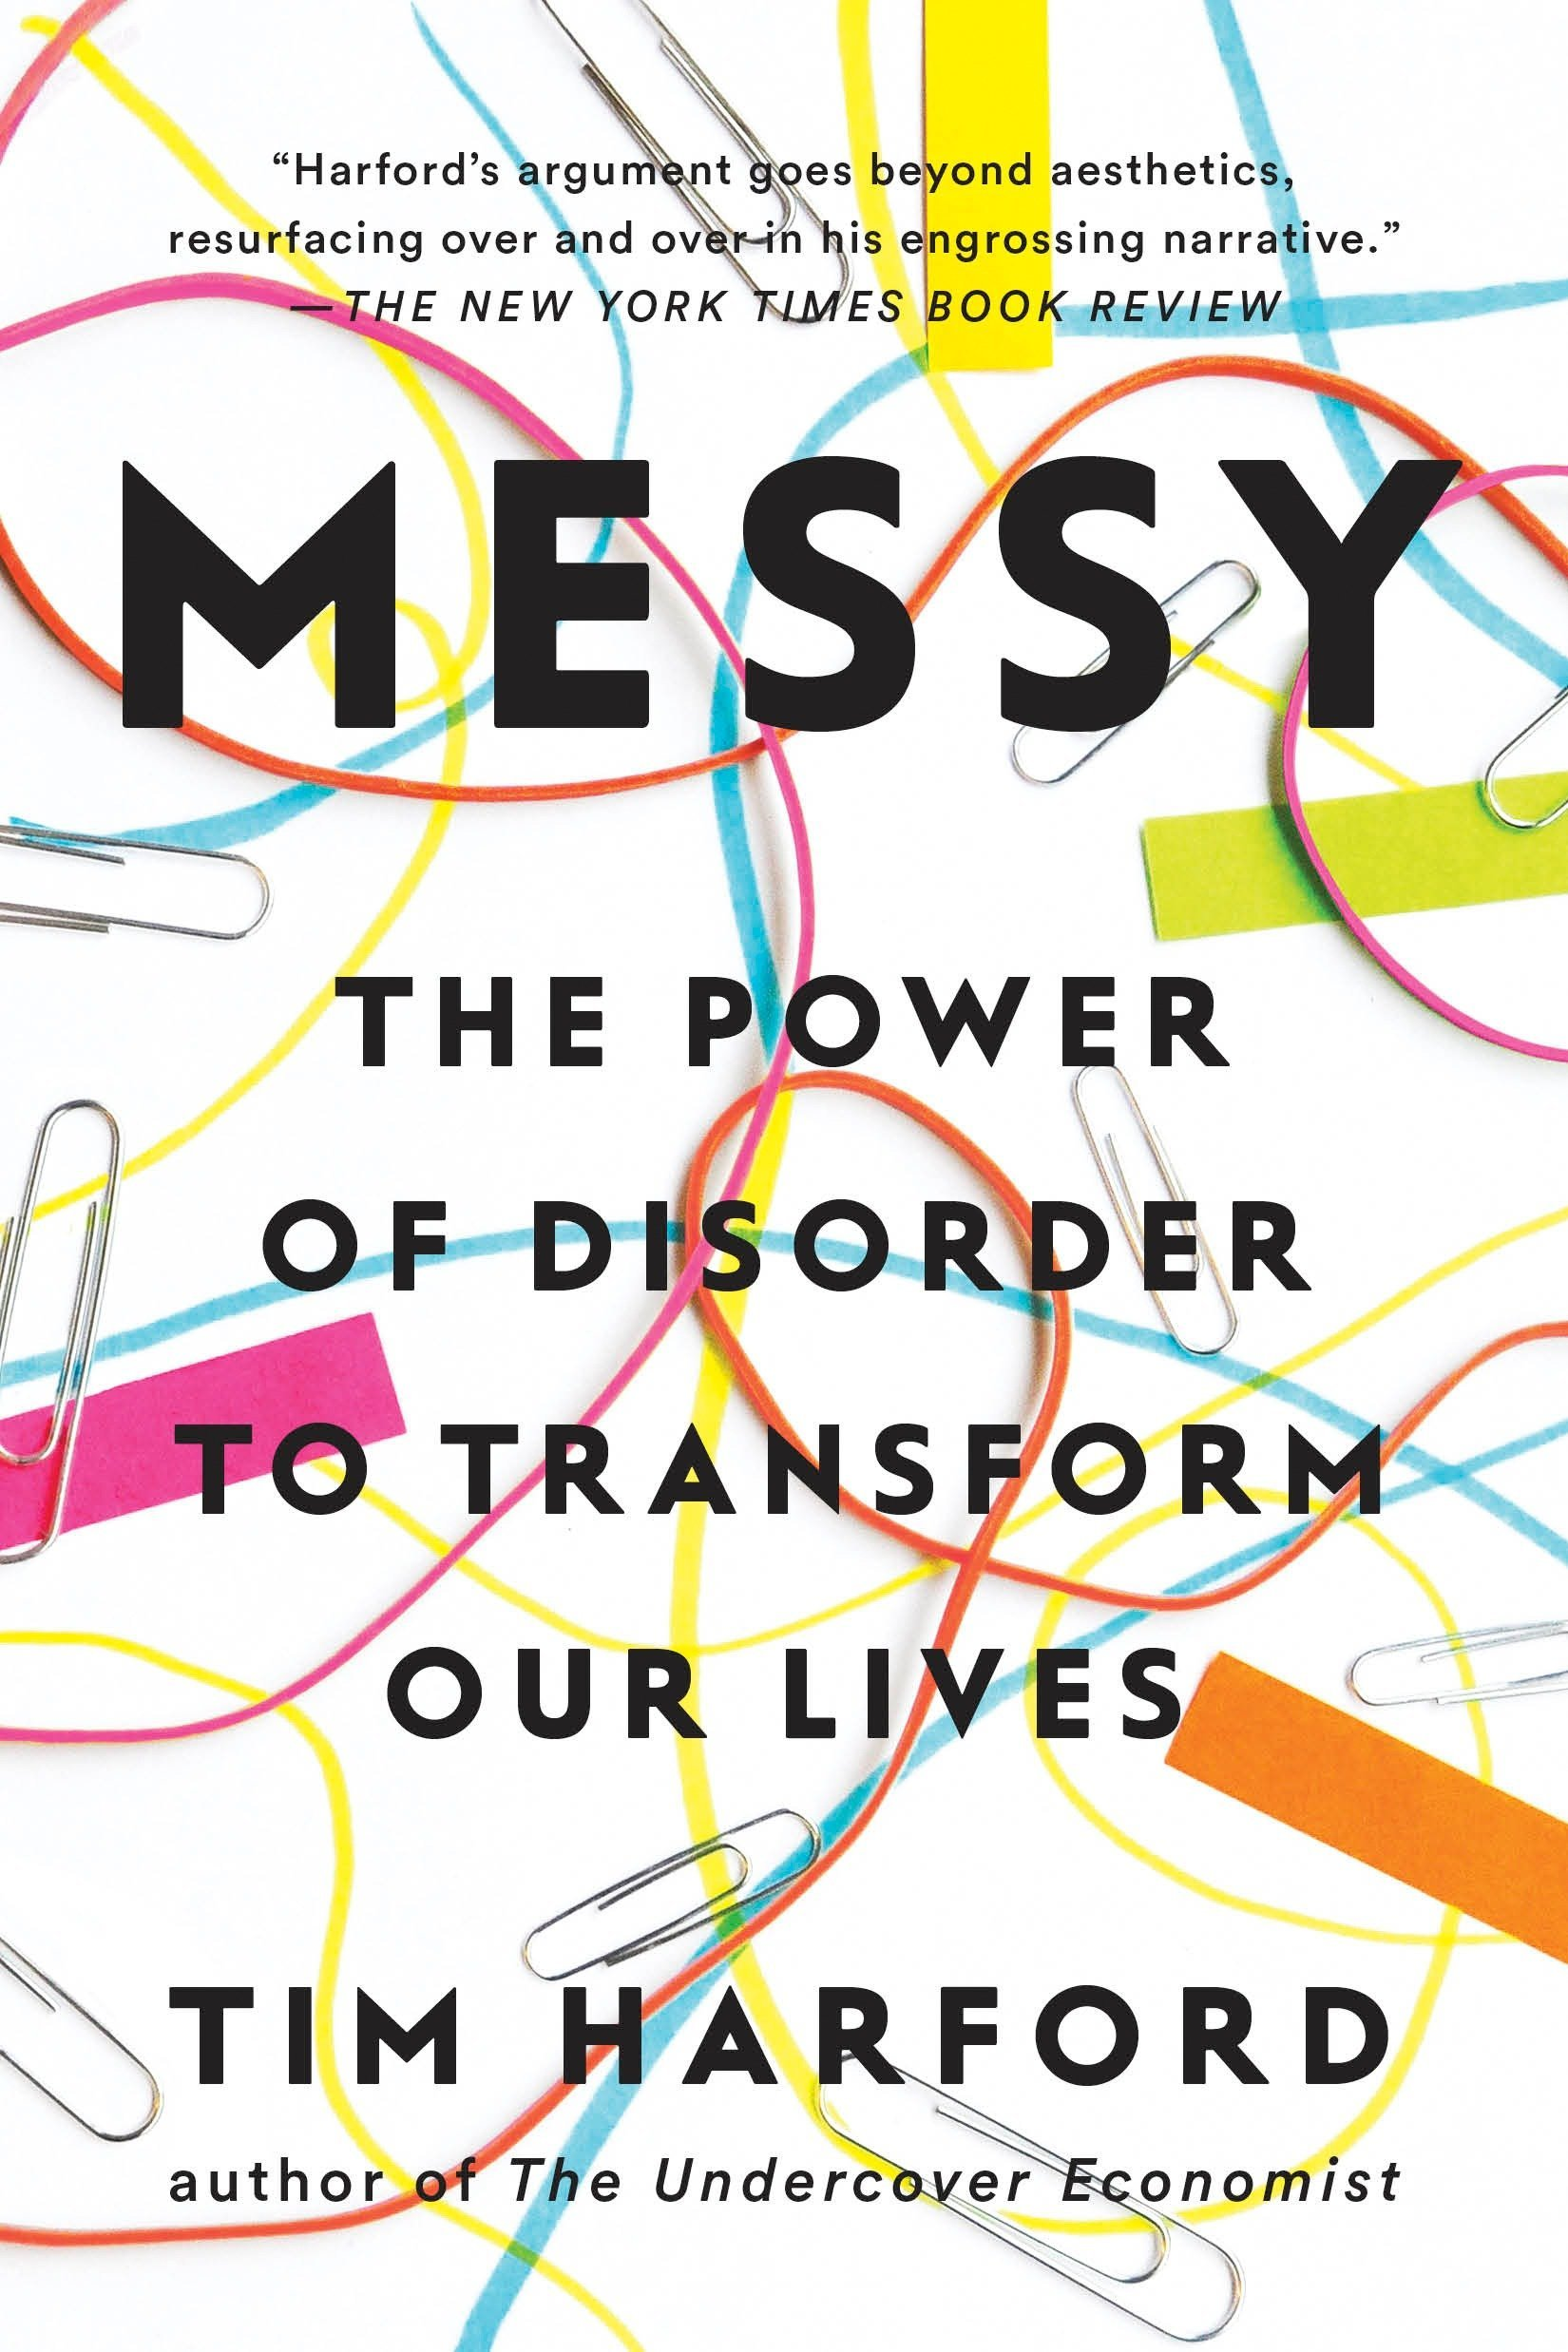 messy-the-power-of-disorder-to-transform-our-lives-by-tim-harford